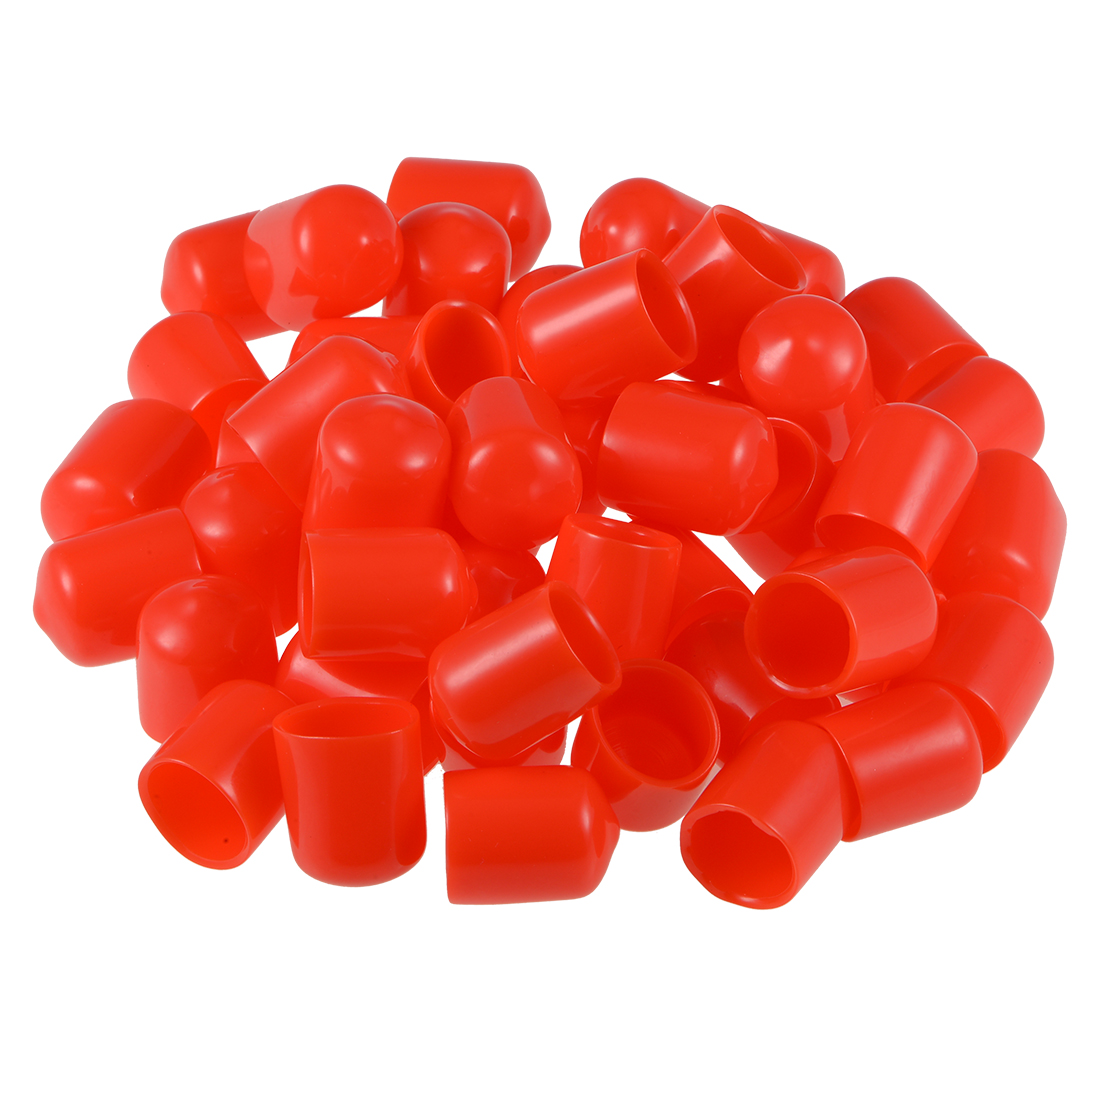 Screw Thread Protector, 14mm ID Round End Cap Cover Red Tube Caps 50pcs